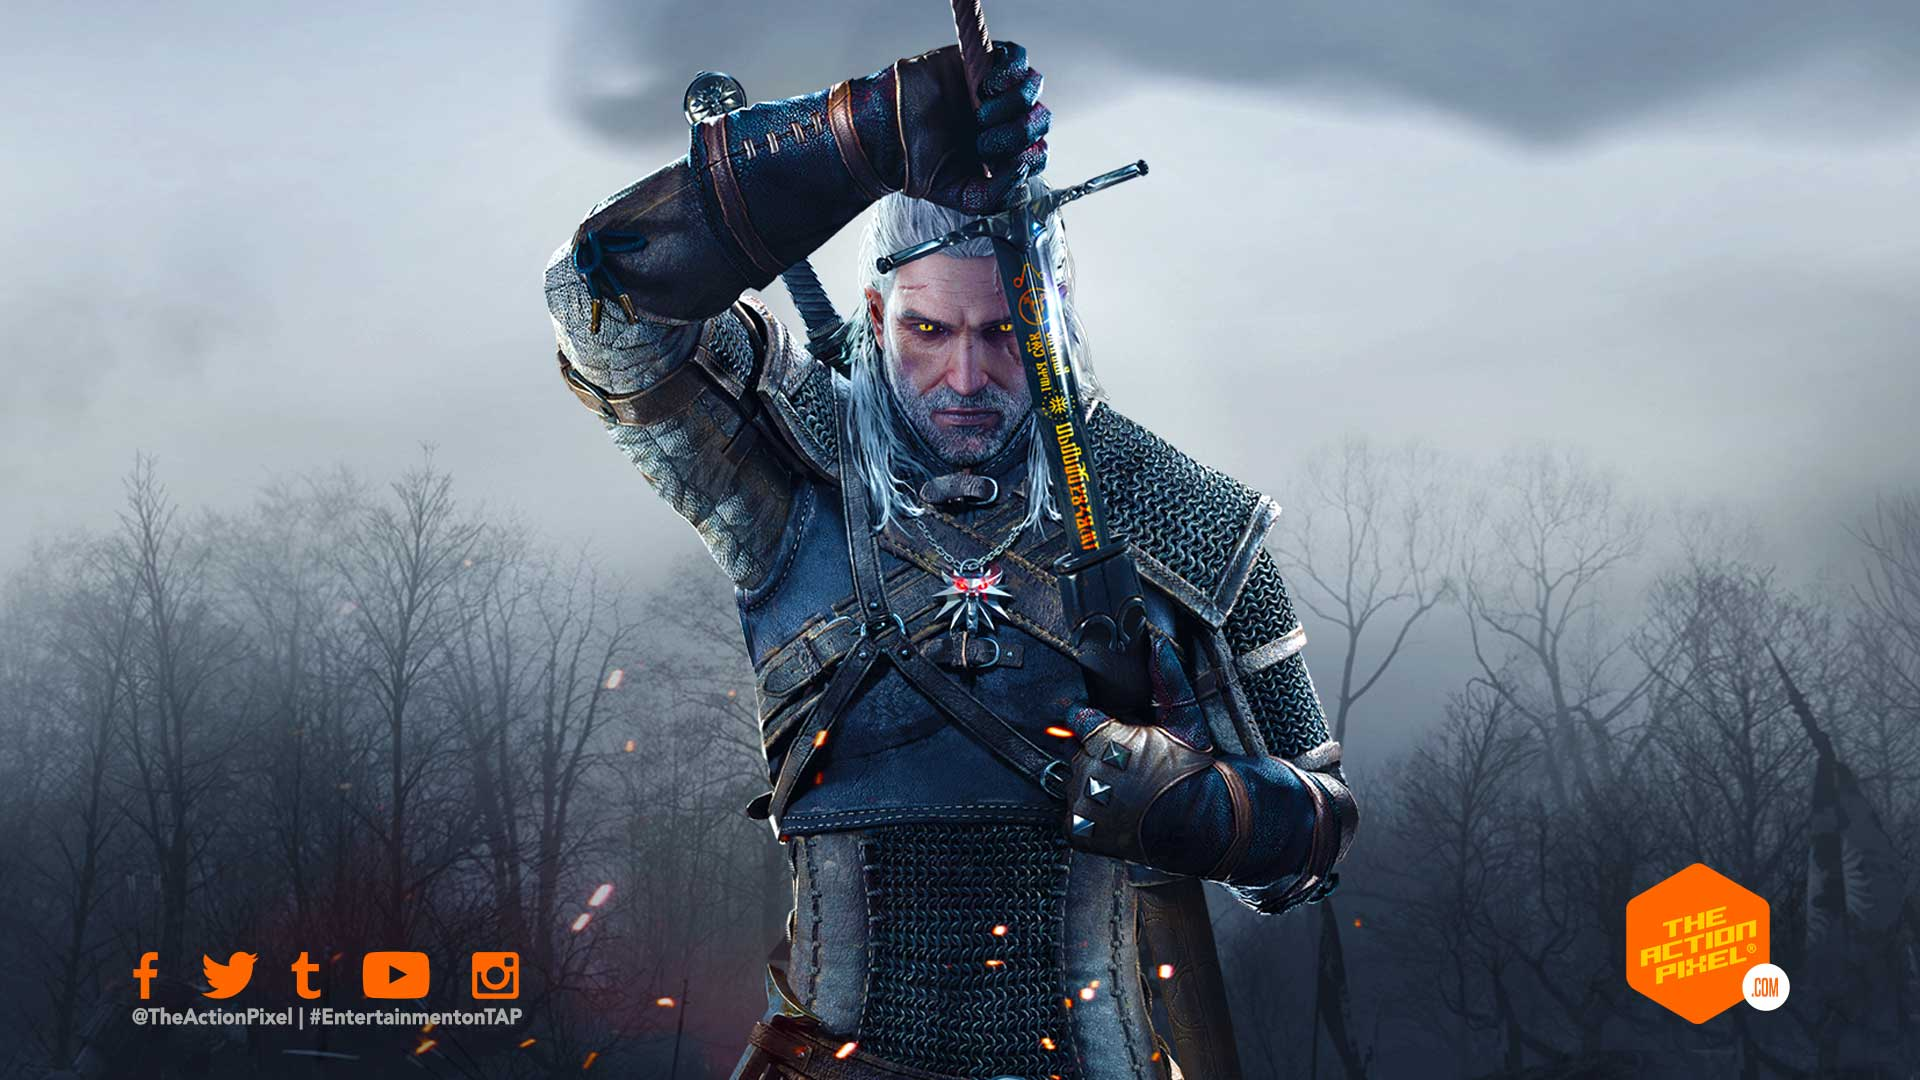 the witcher, the witcher 4, the witcher 3: wild hunt, entertainment on tap, the action pixel, featured, cd projekt red, cyberpunk 2077, the witcher, witcher,